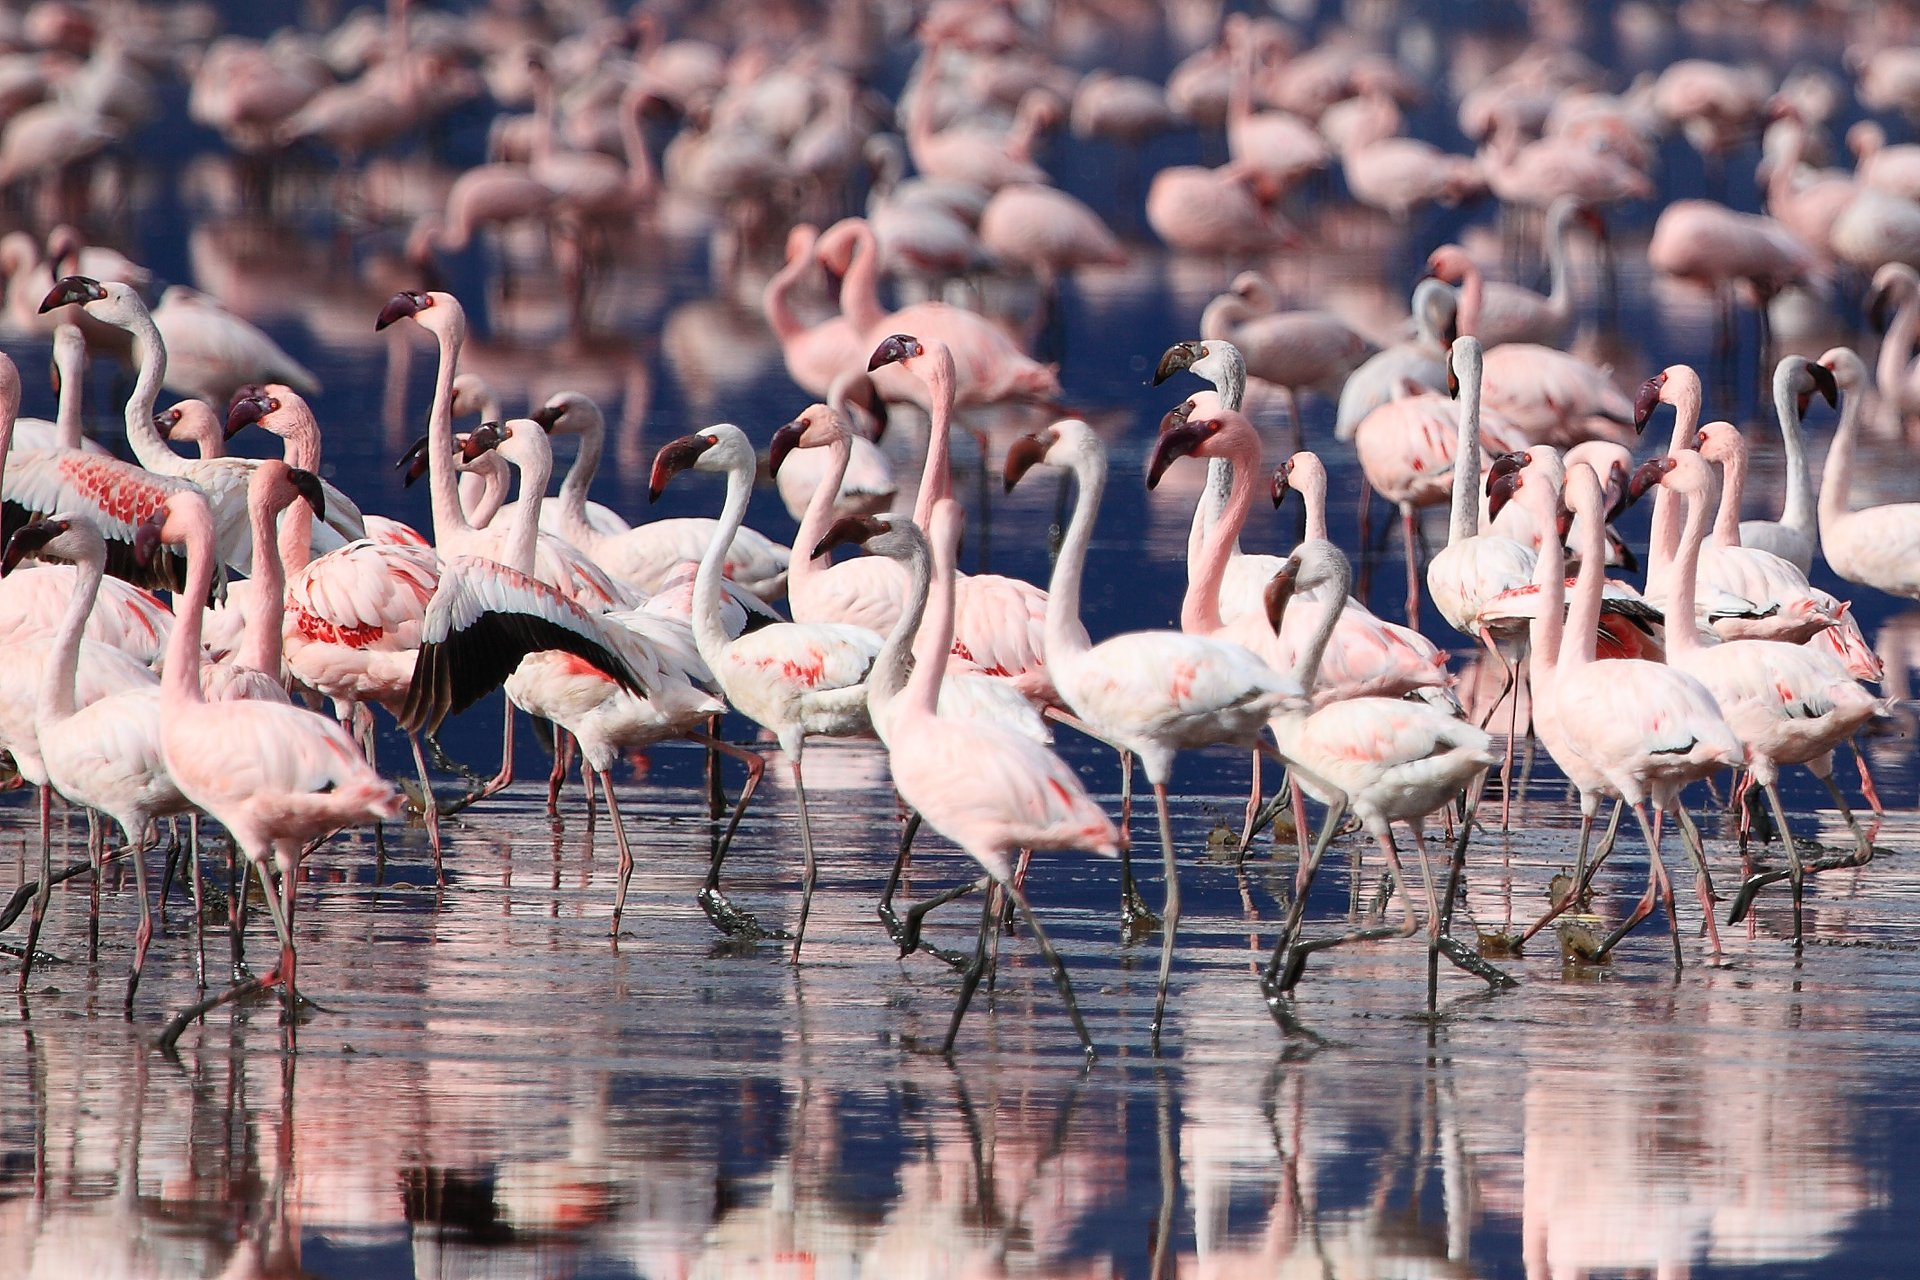 Flamingos in Tanzania 2020 - Best Time